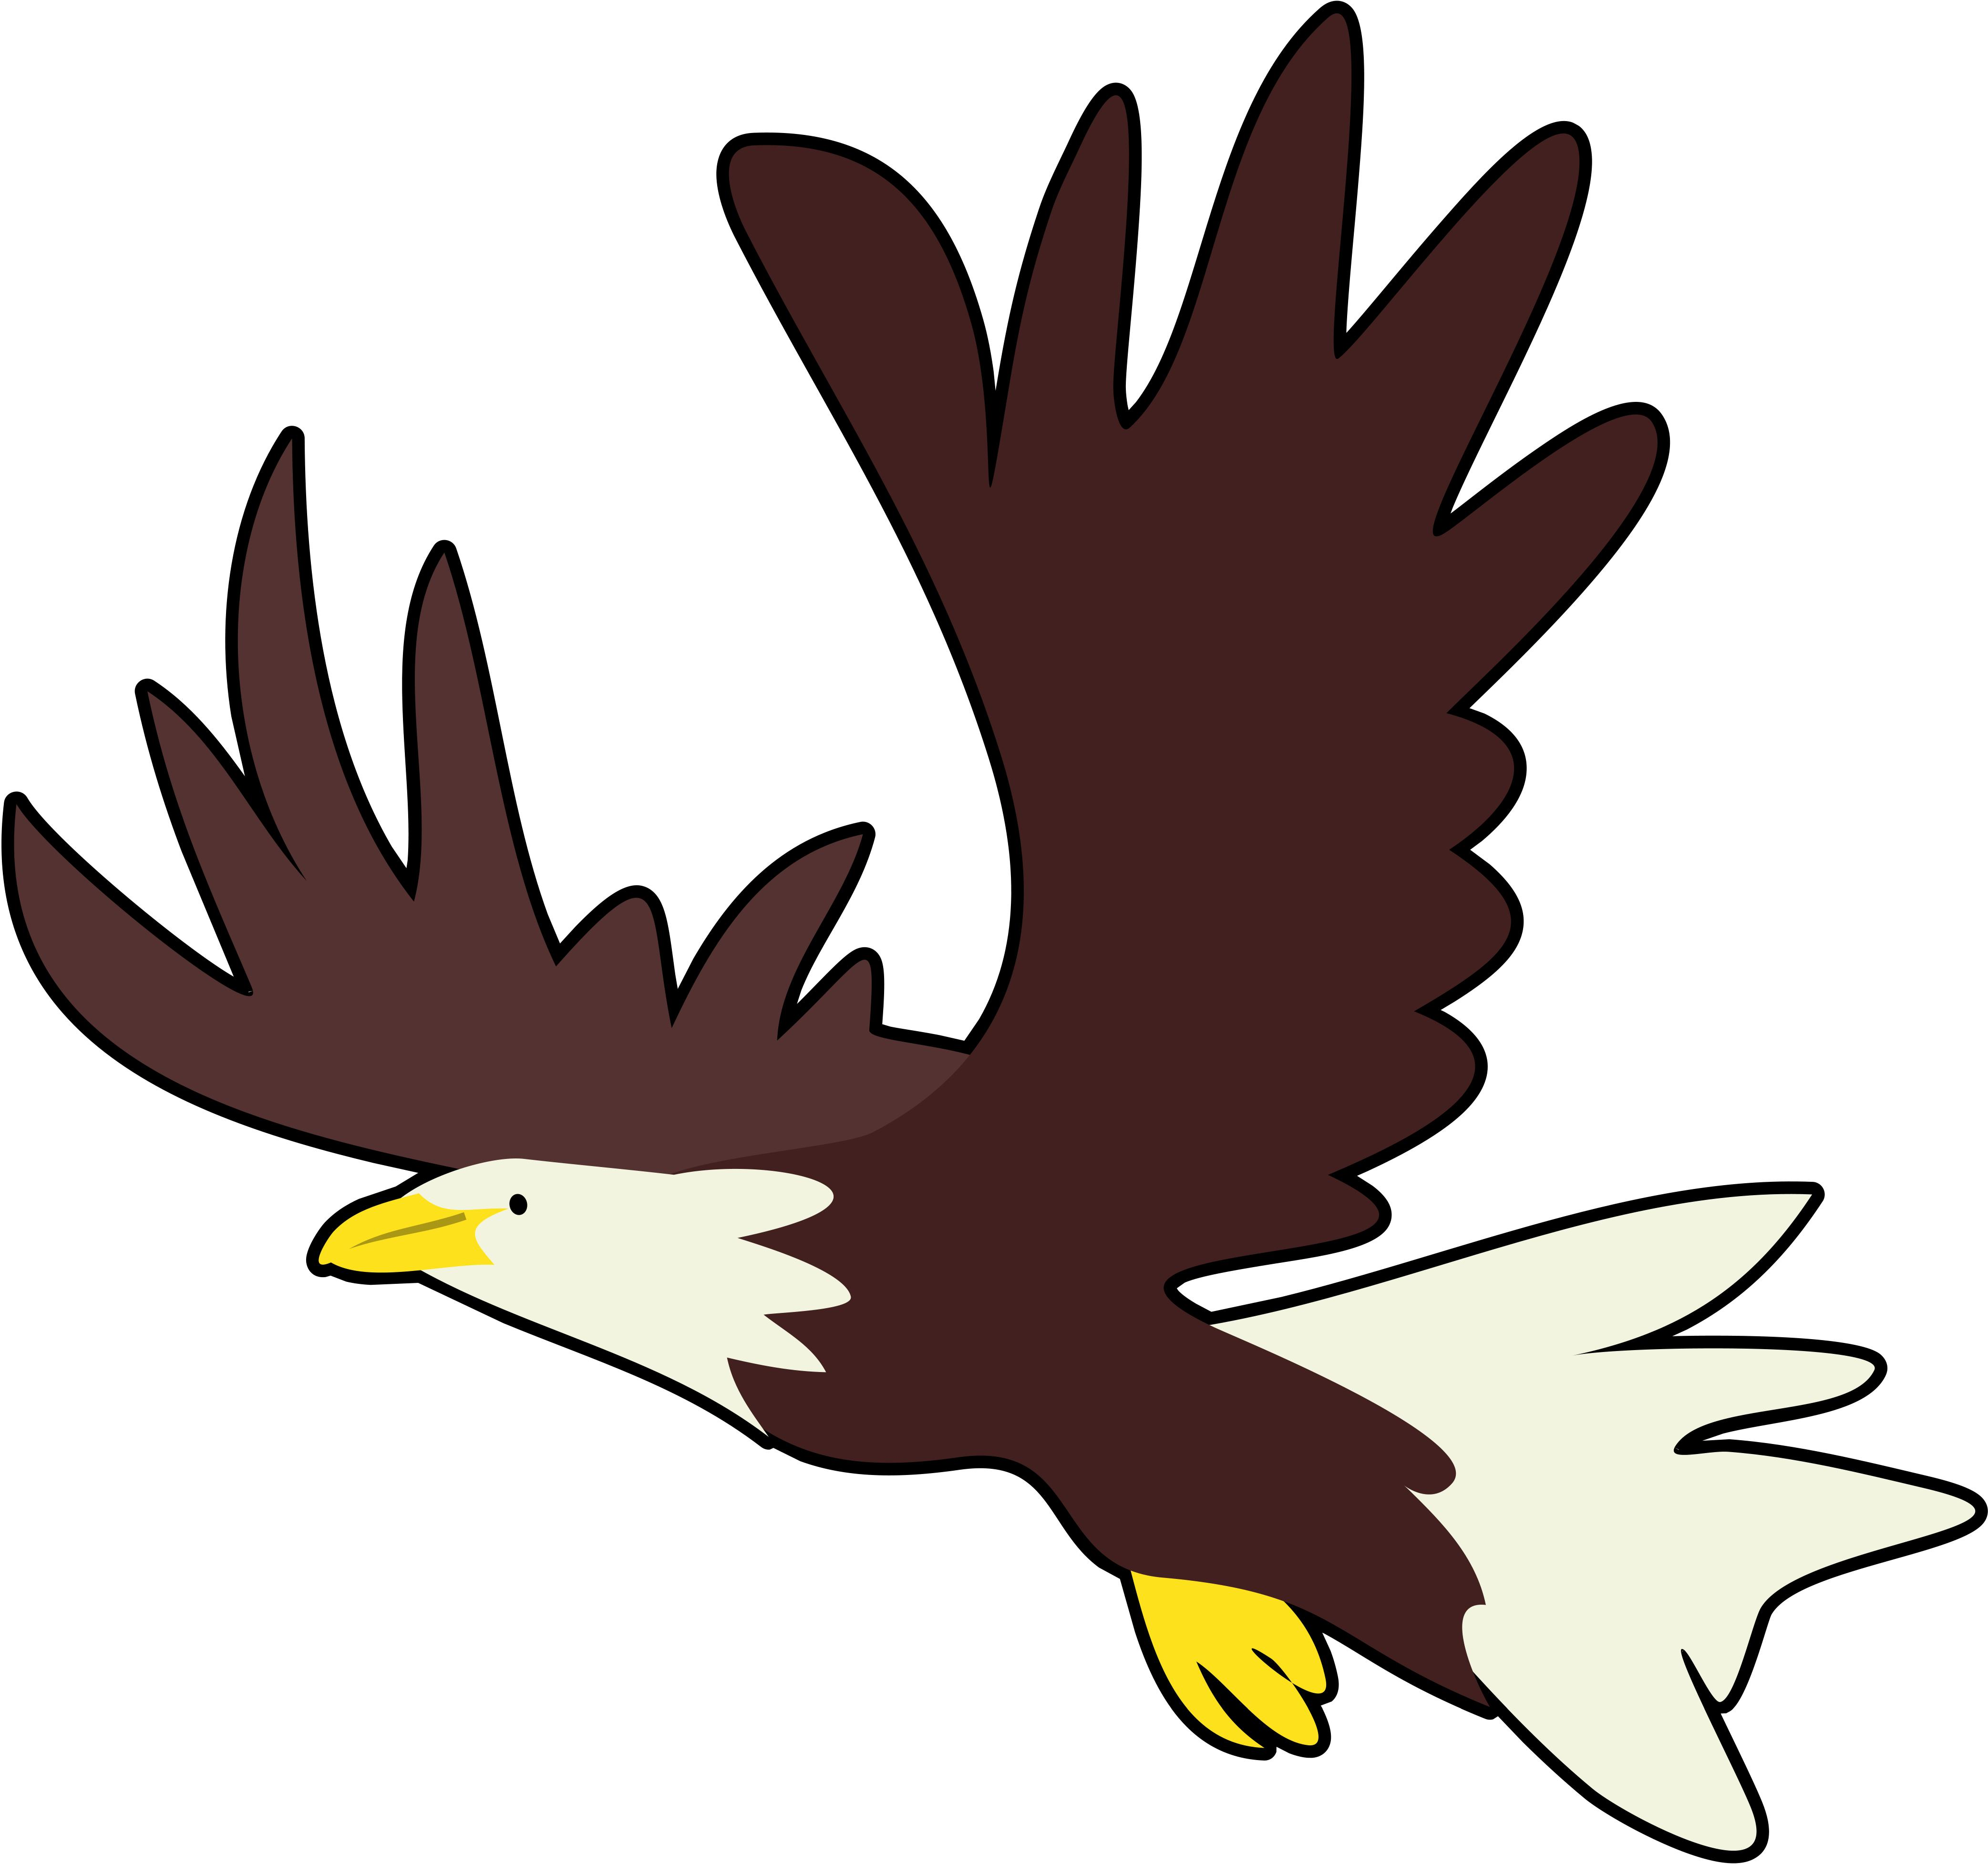 Eagle clipart baby eagle. At getdrawings com free